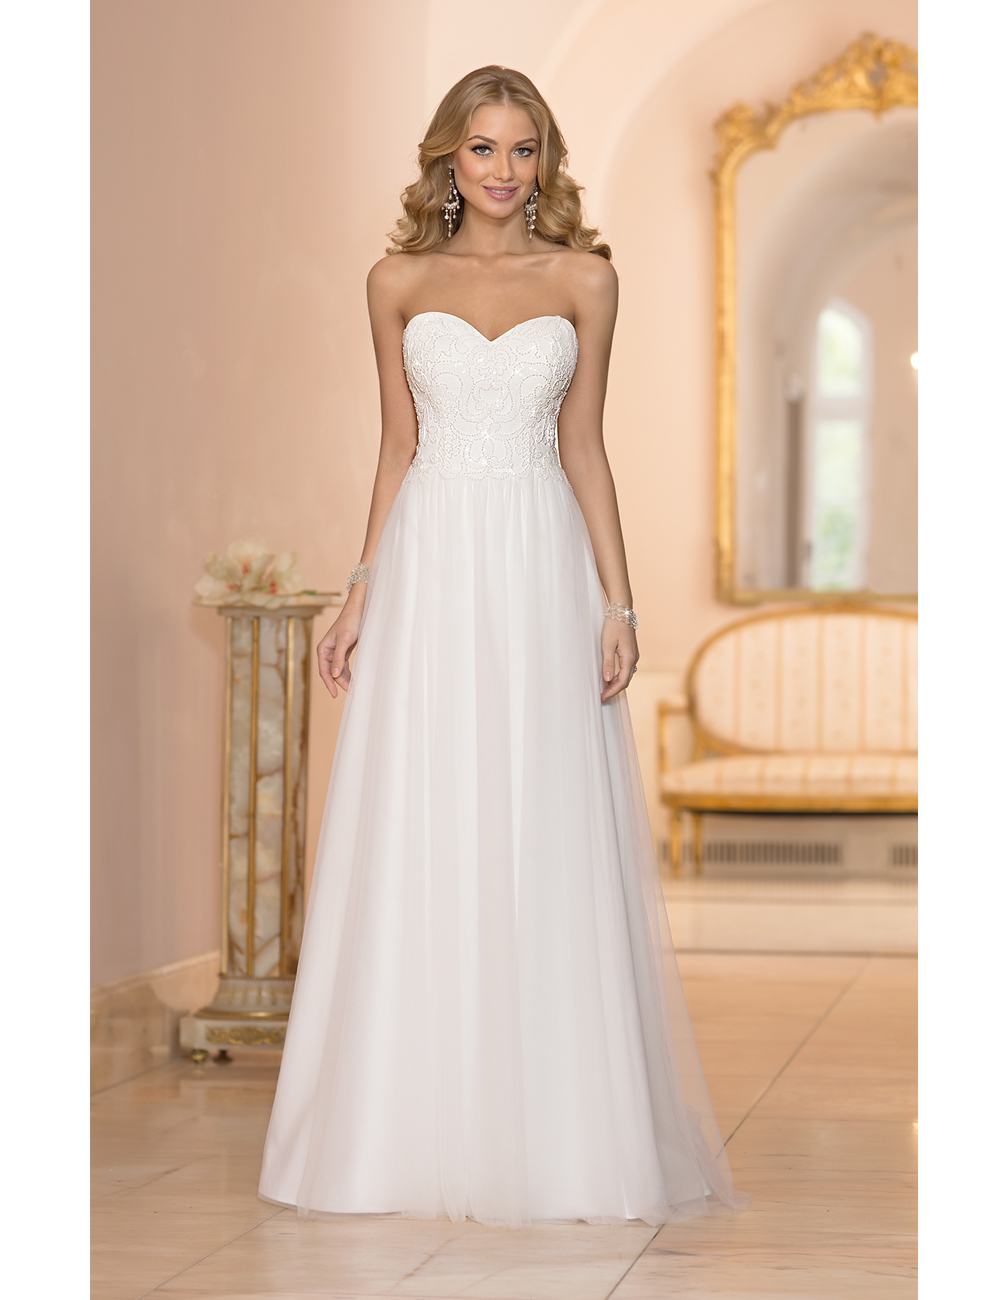 Compare prices on dancing wedding dress online shopping for Best wedding dresses for dancing